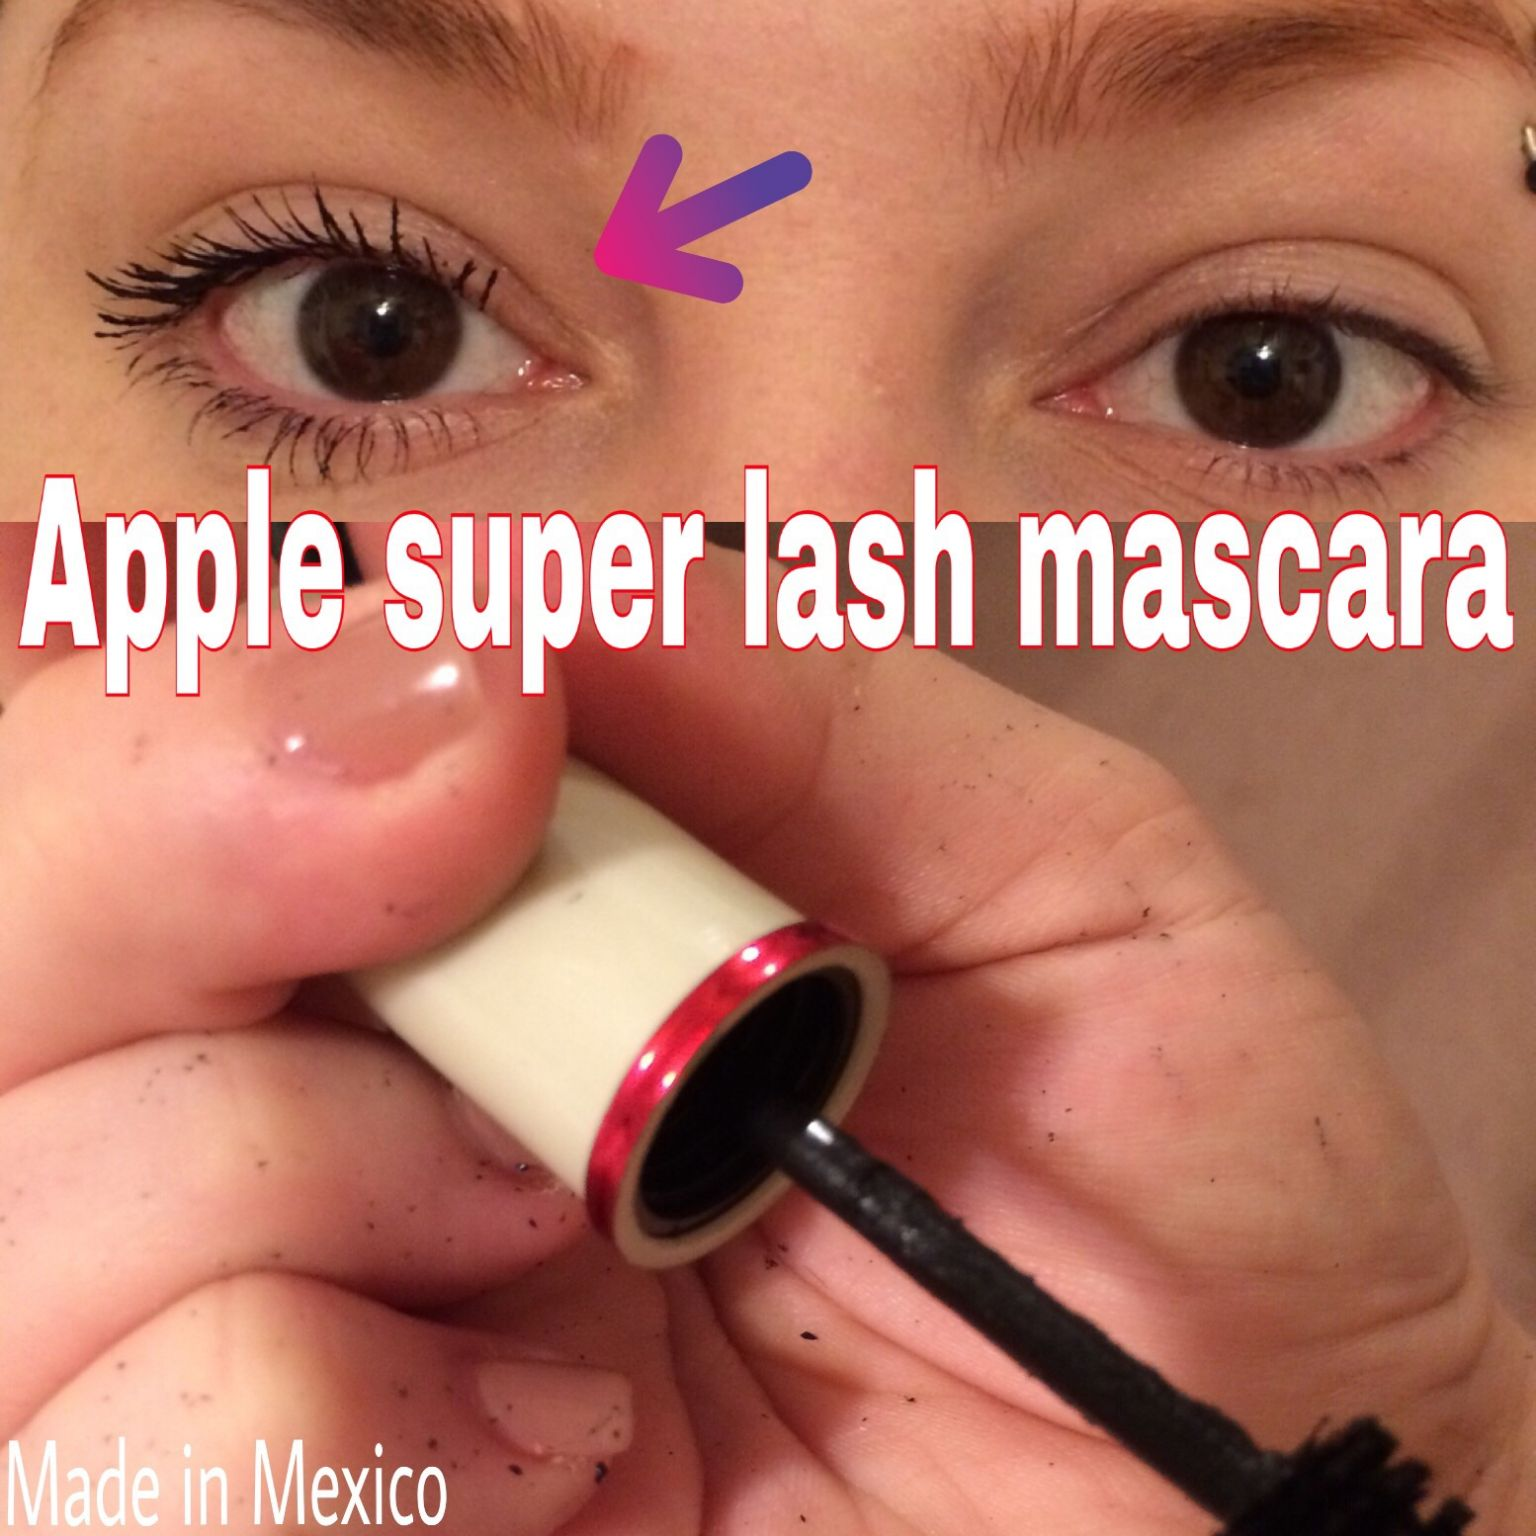 Apple By Apple - Super Lash reviews, photos, ingredients - Makeupalley